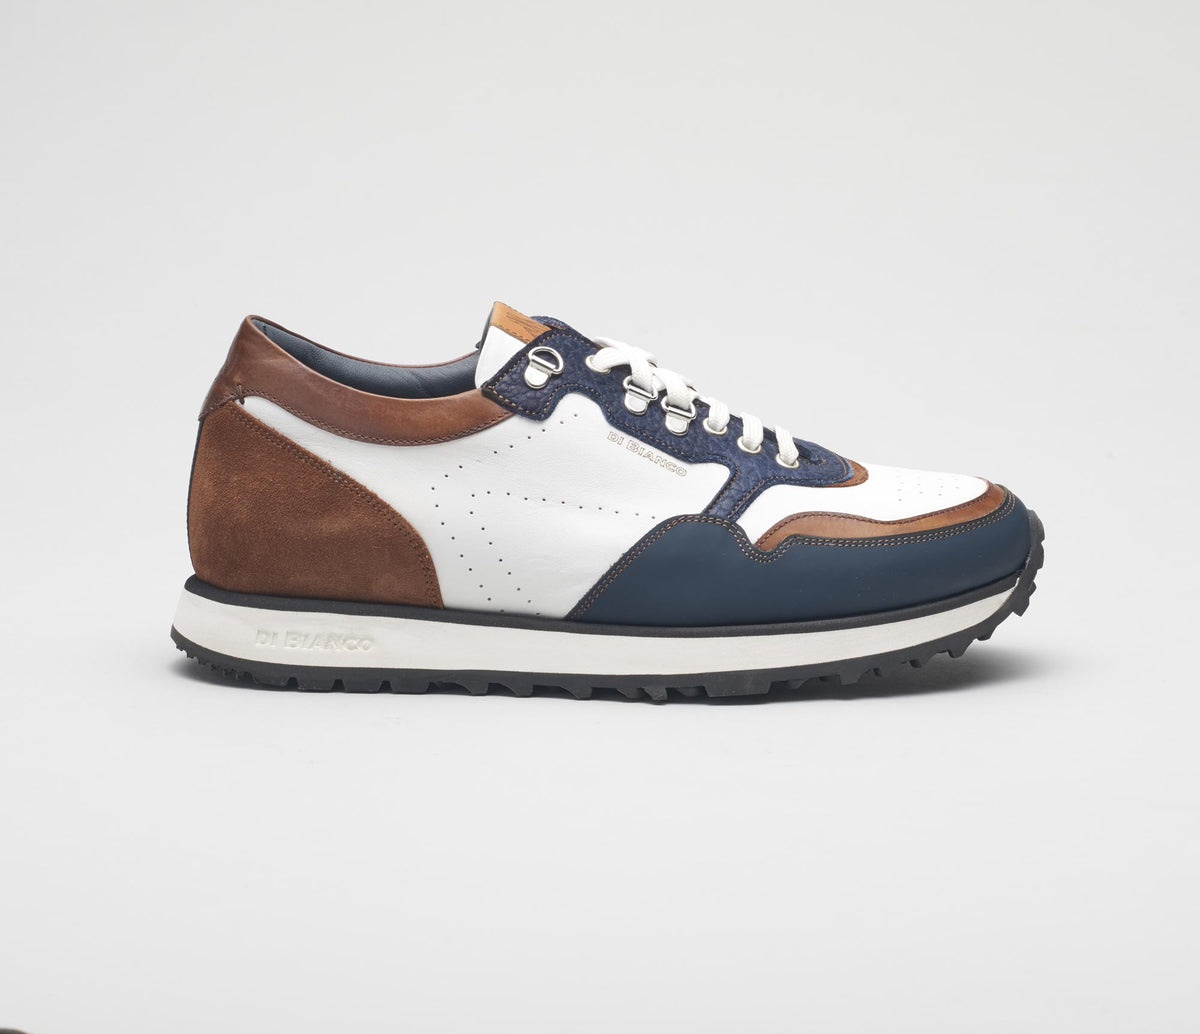 The Potenza Bison Leather Sneakers for Men